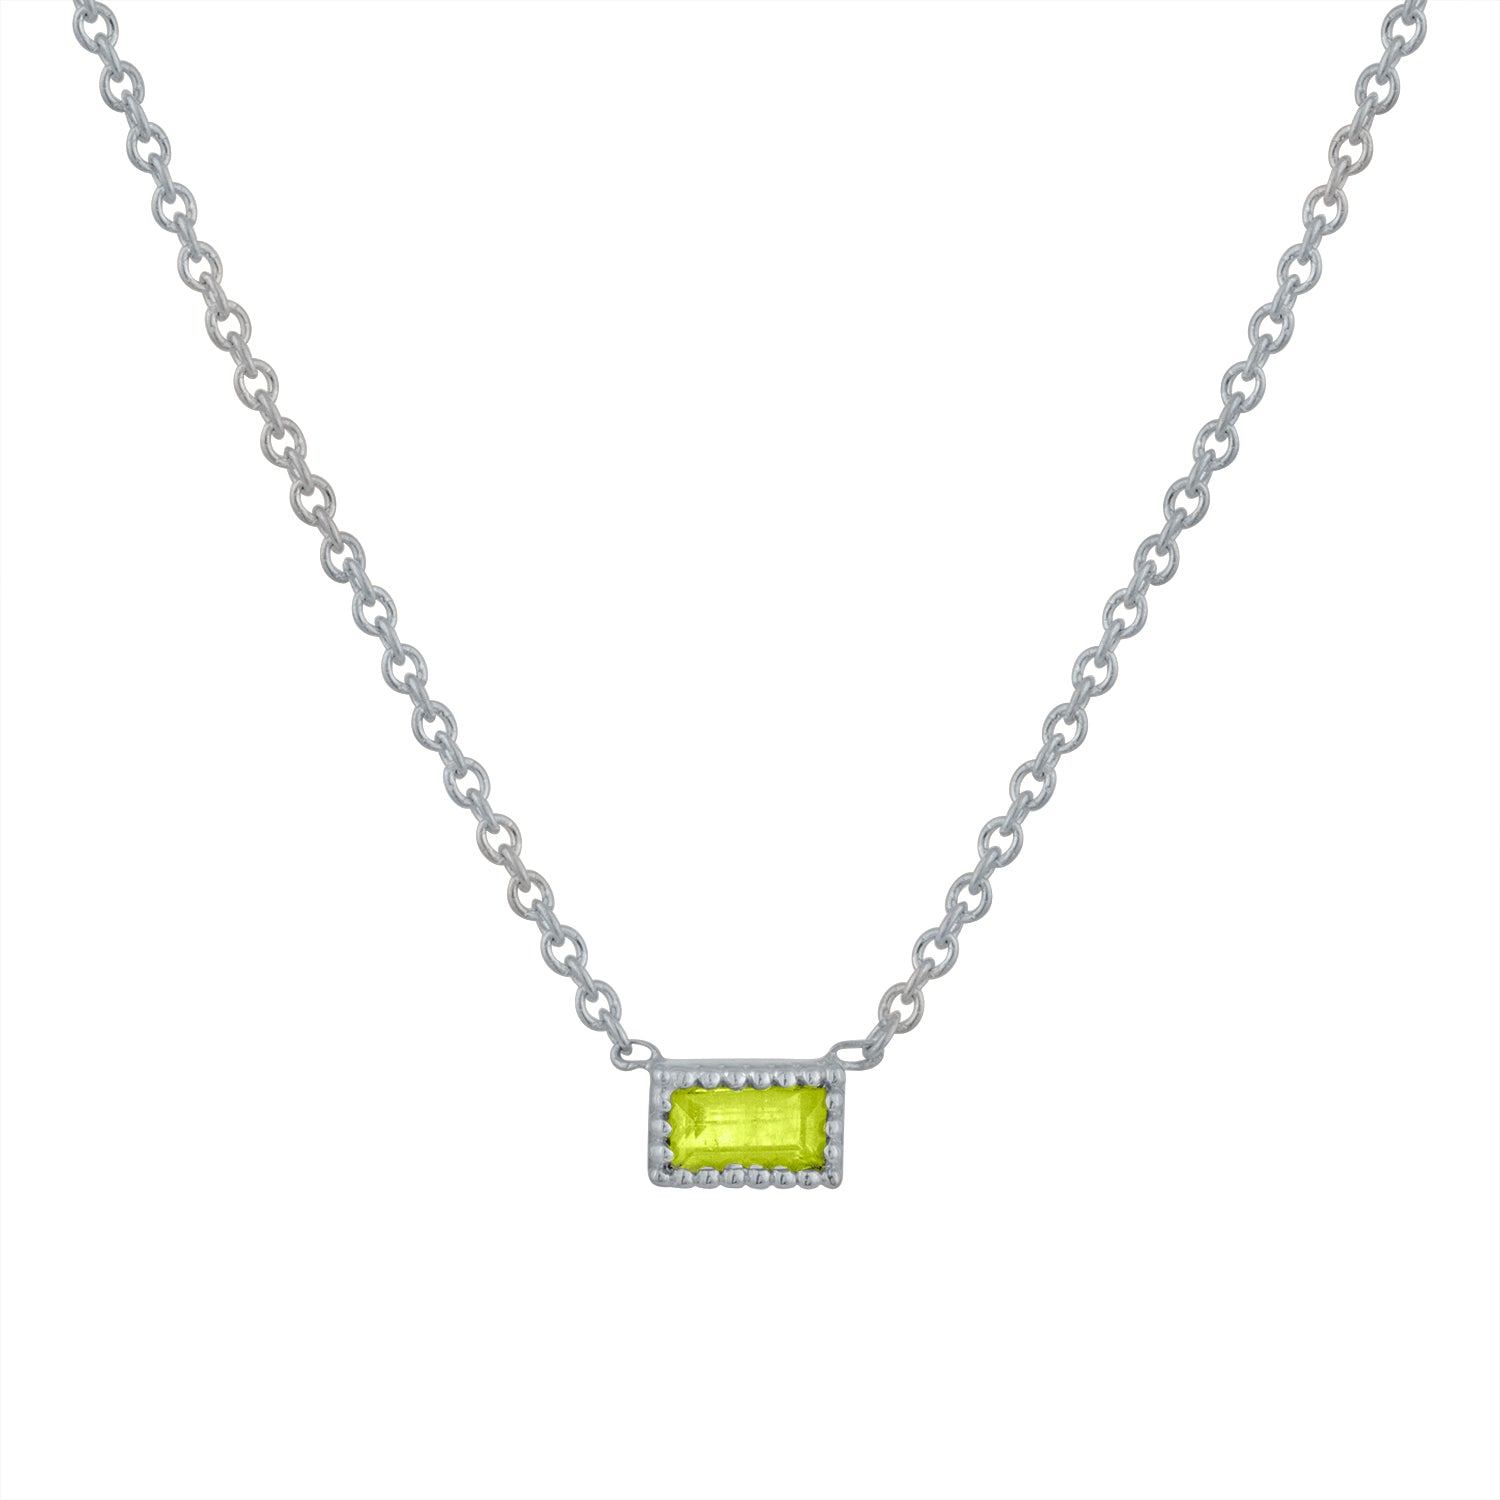 Small single peridot baguette necklace